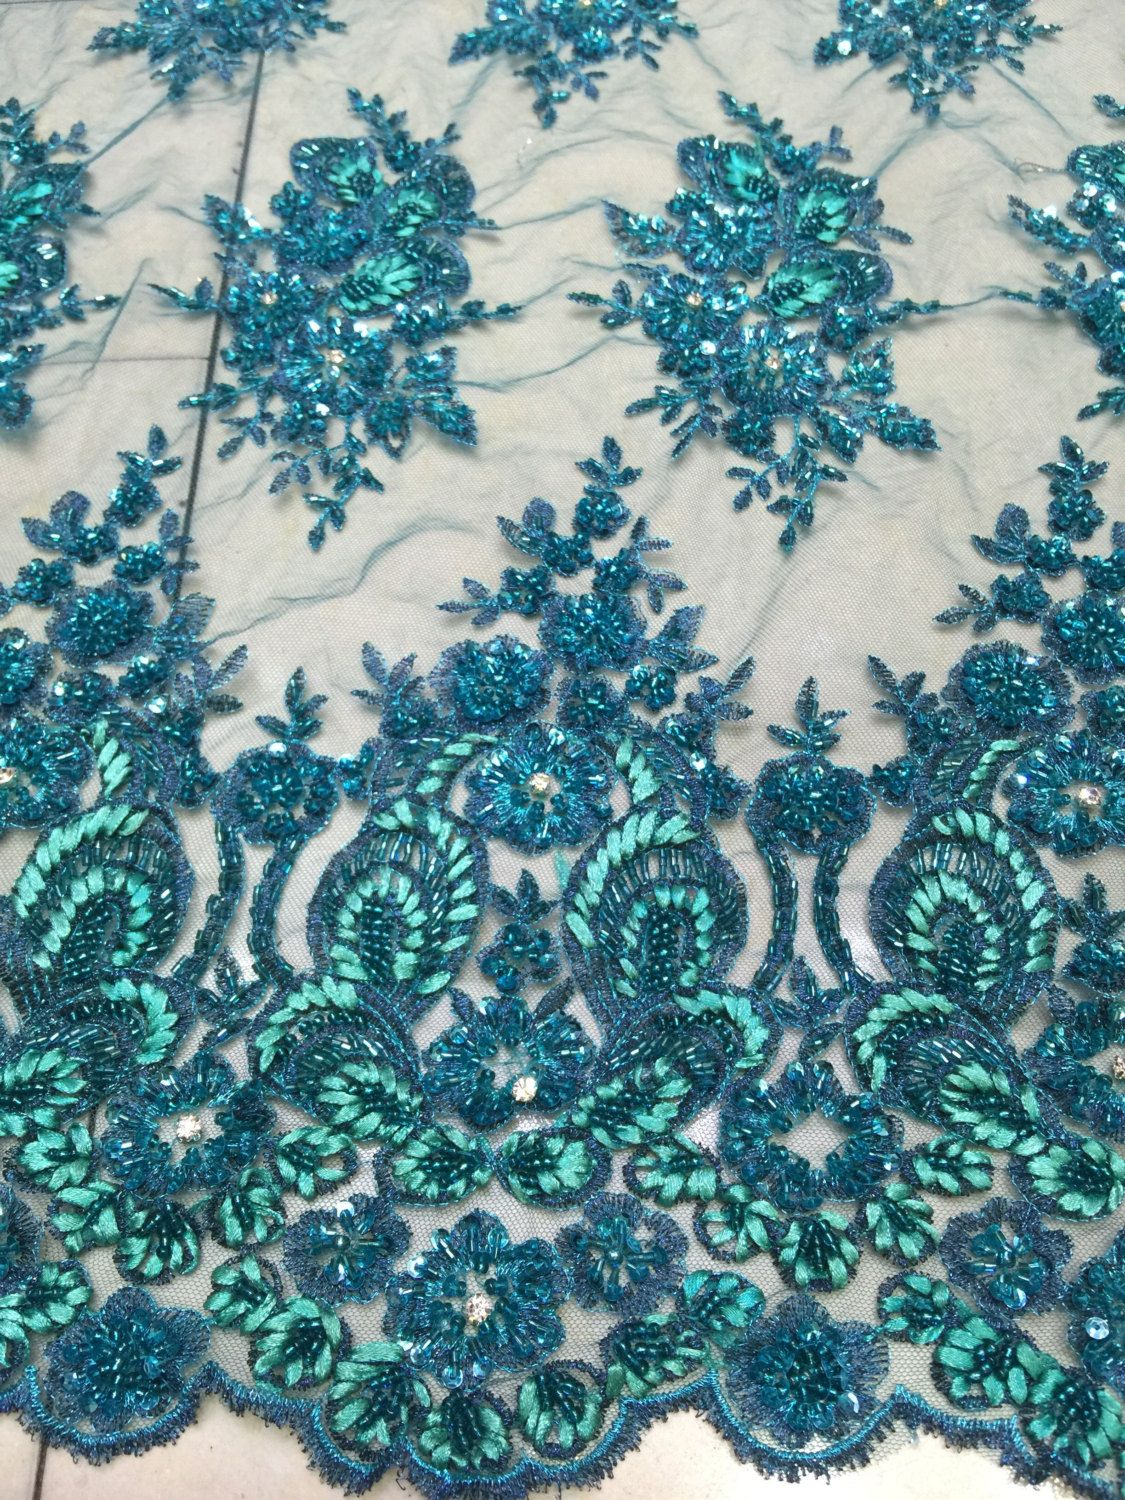 Wedding Lace 3D Lace Fabric  Bright Blue color Lace Fabric embroidered lace Blue Lace for high fashion handmade pearl beaded